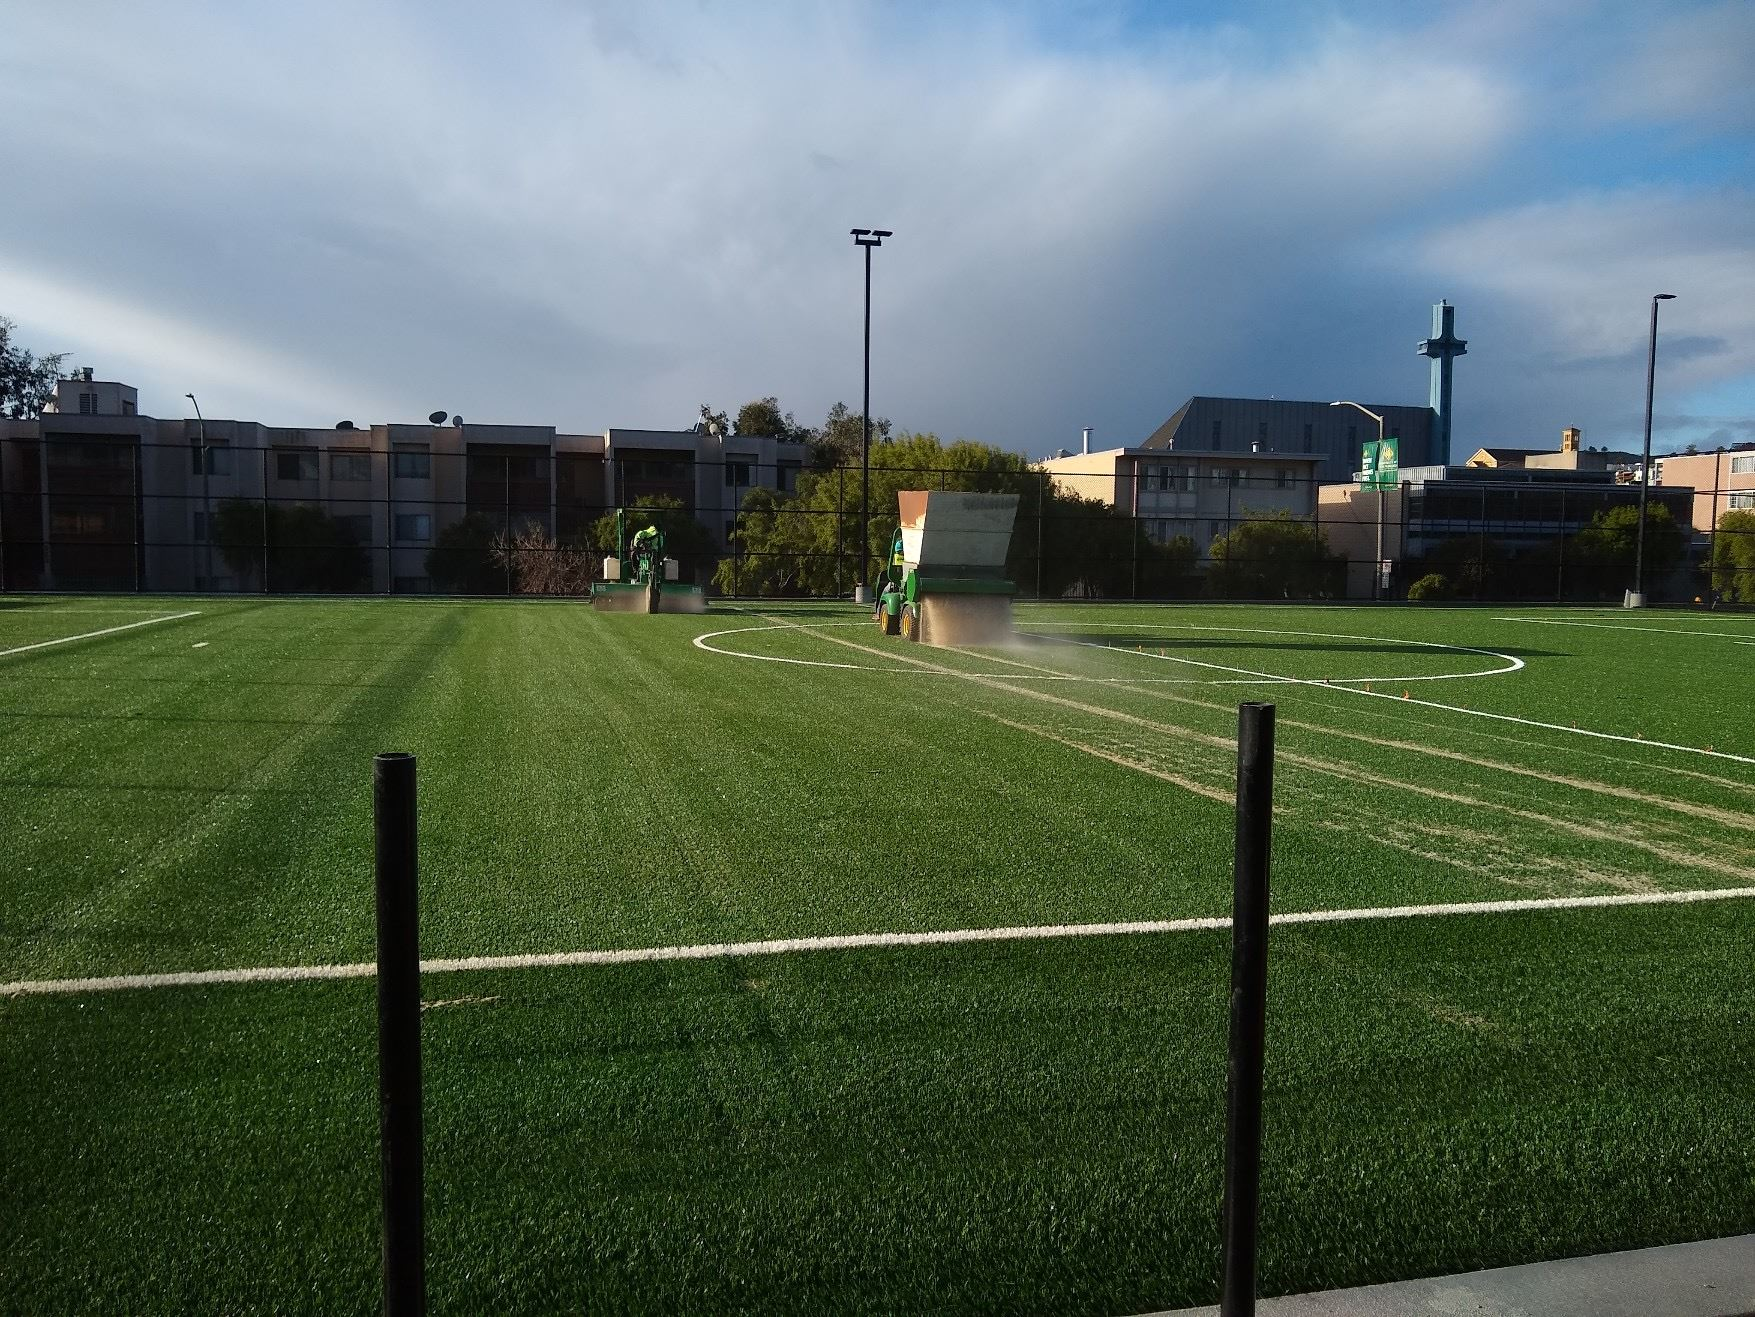 The image is of the small synthetic turf field receiving its natural infill with a machine spraying